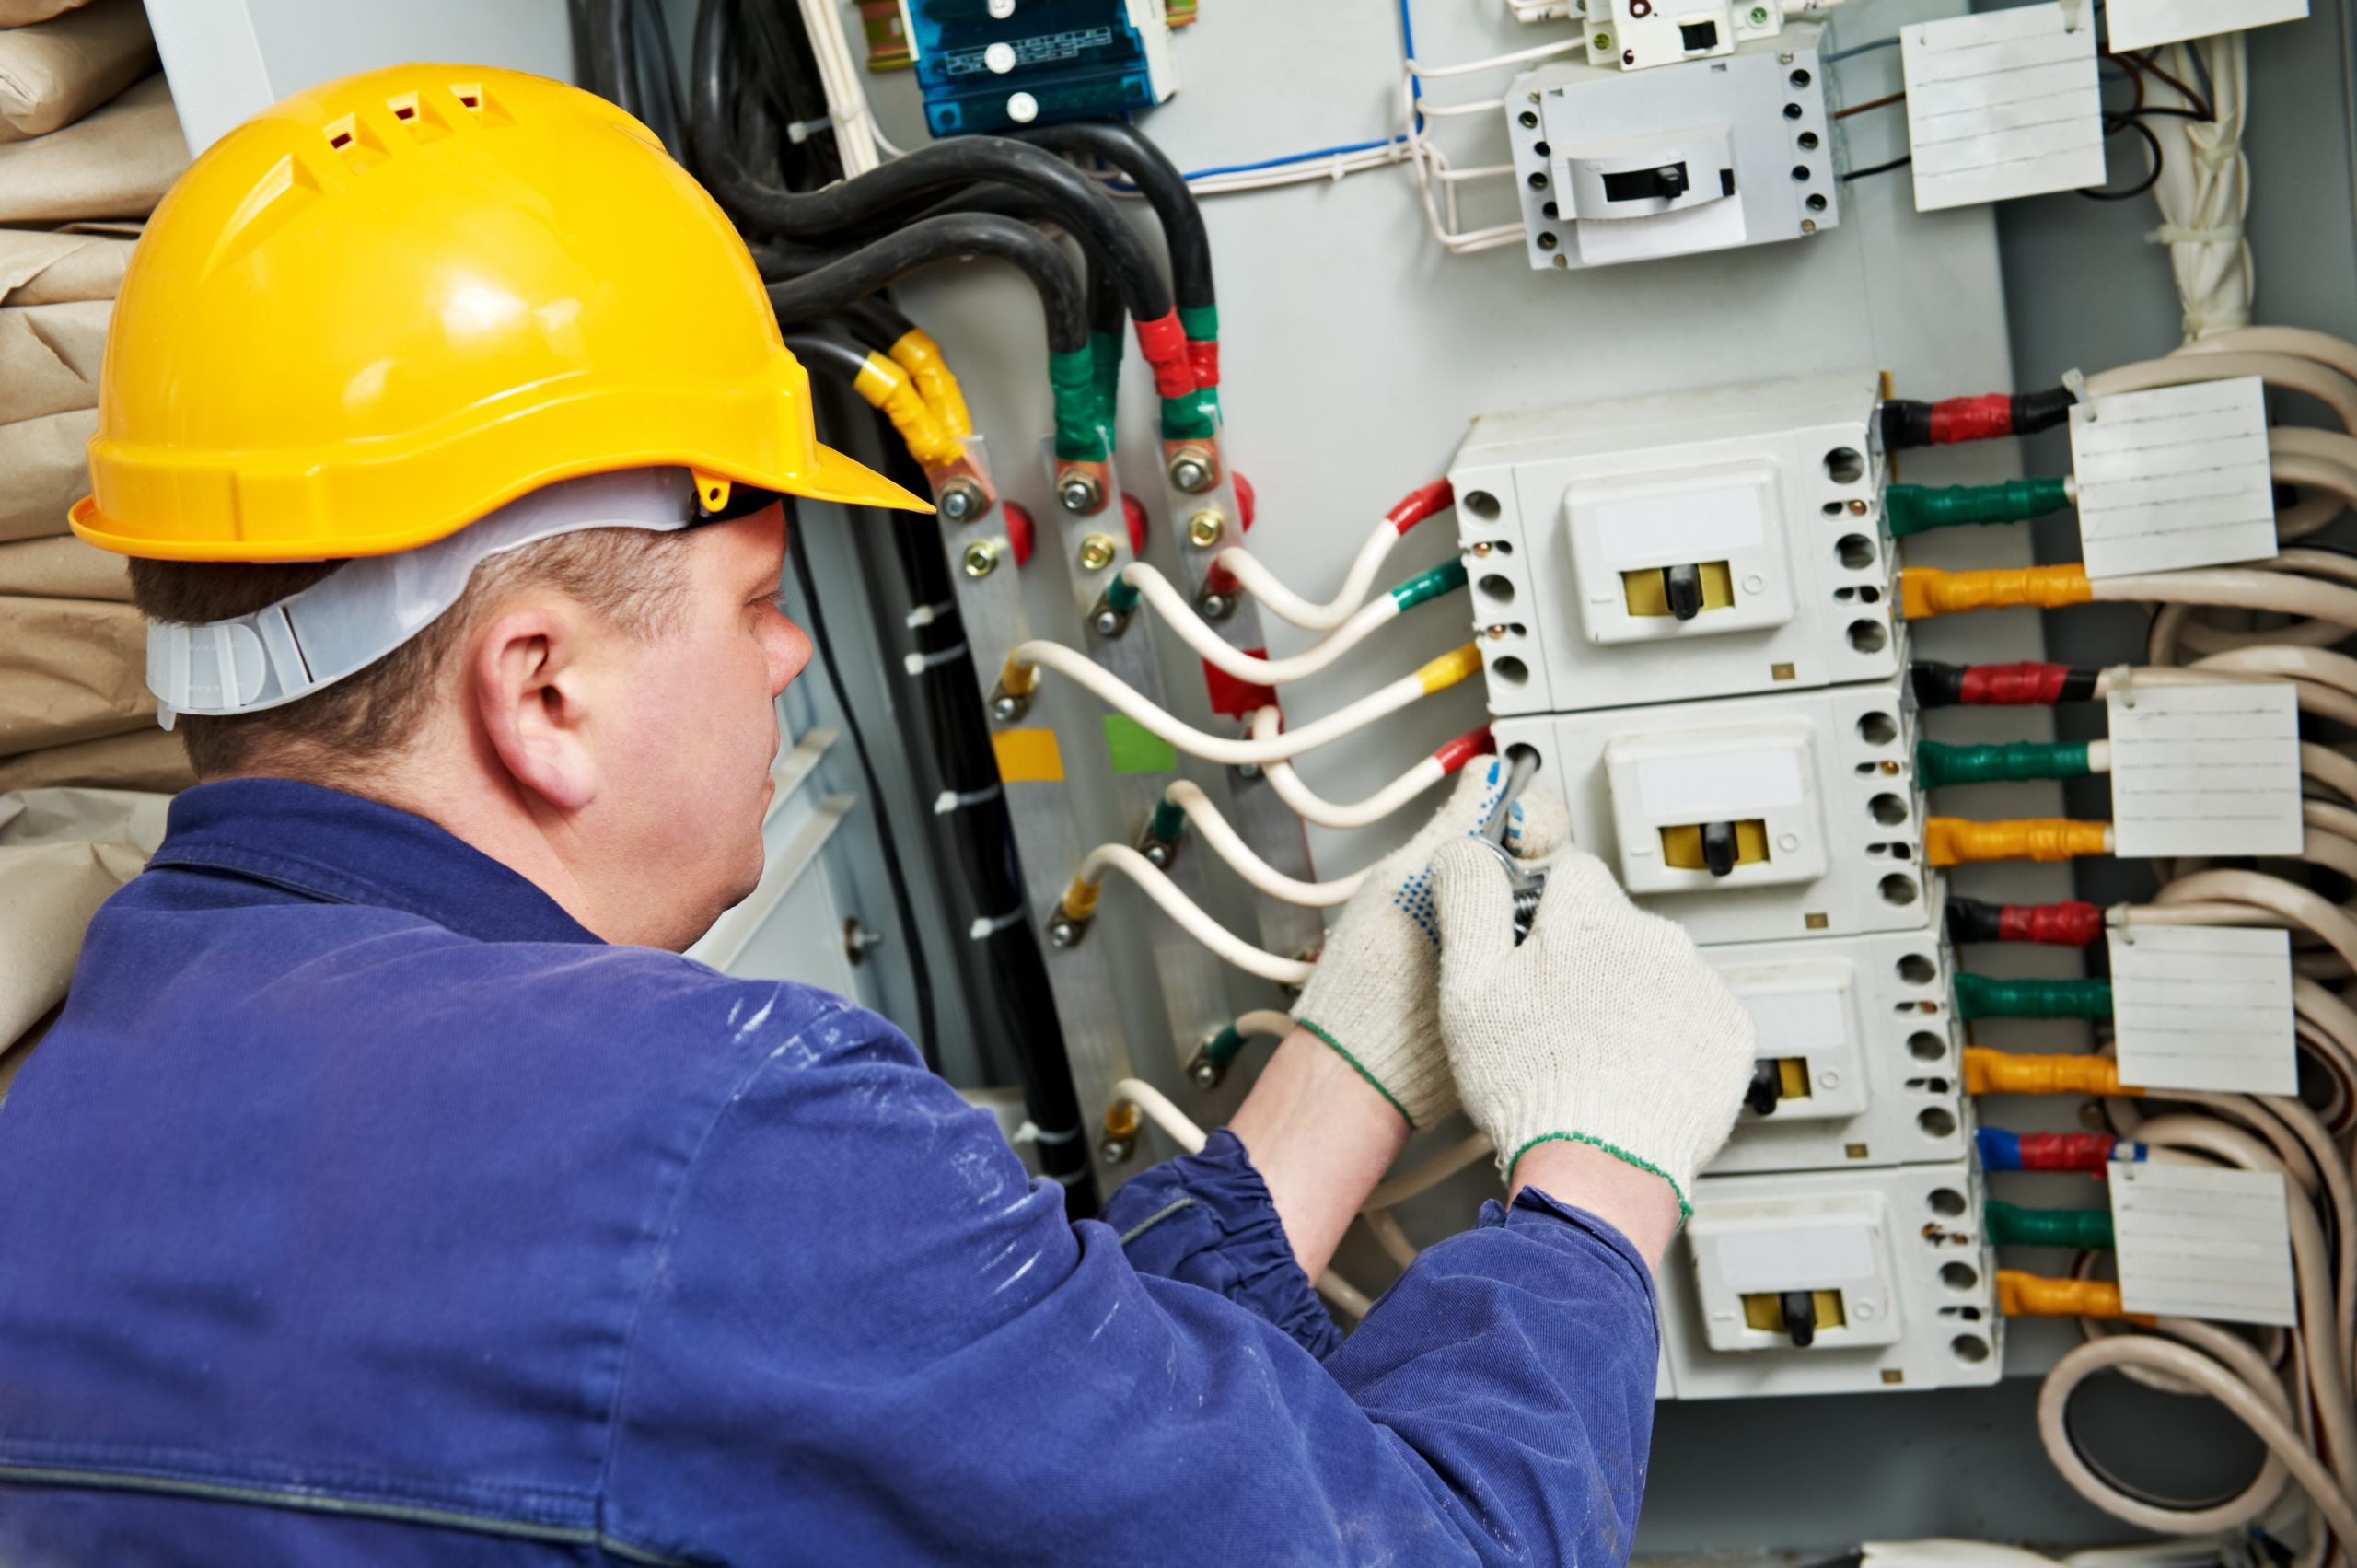 7 Steps to Mastering Electrical Safety